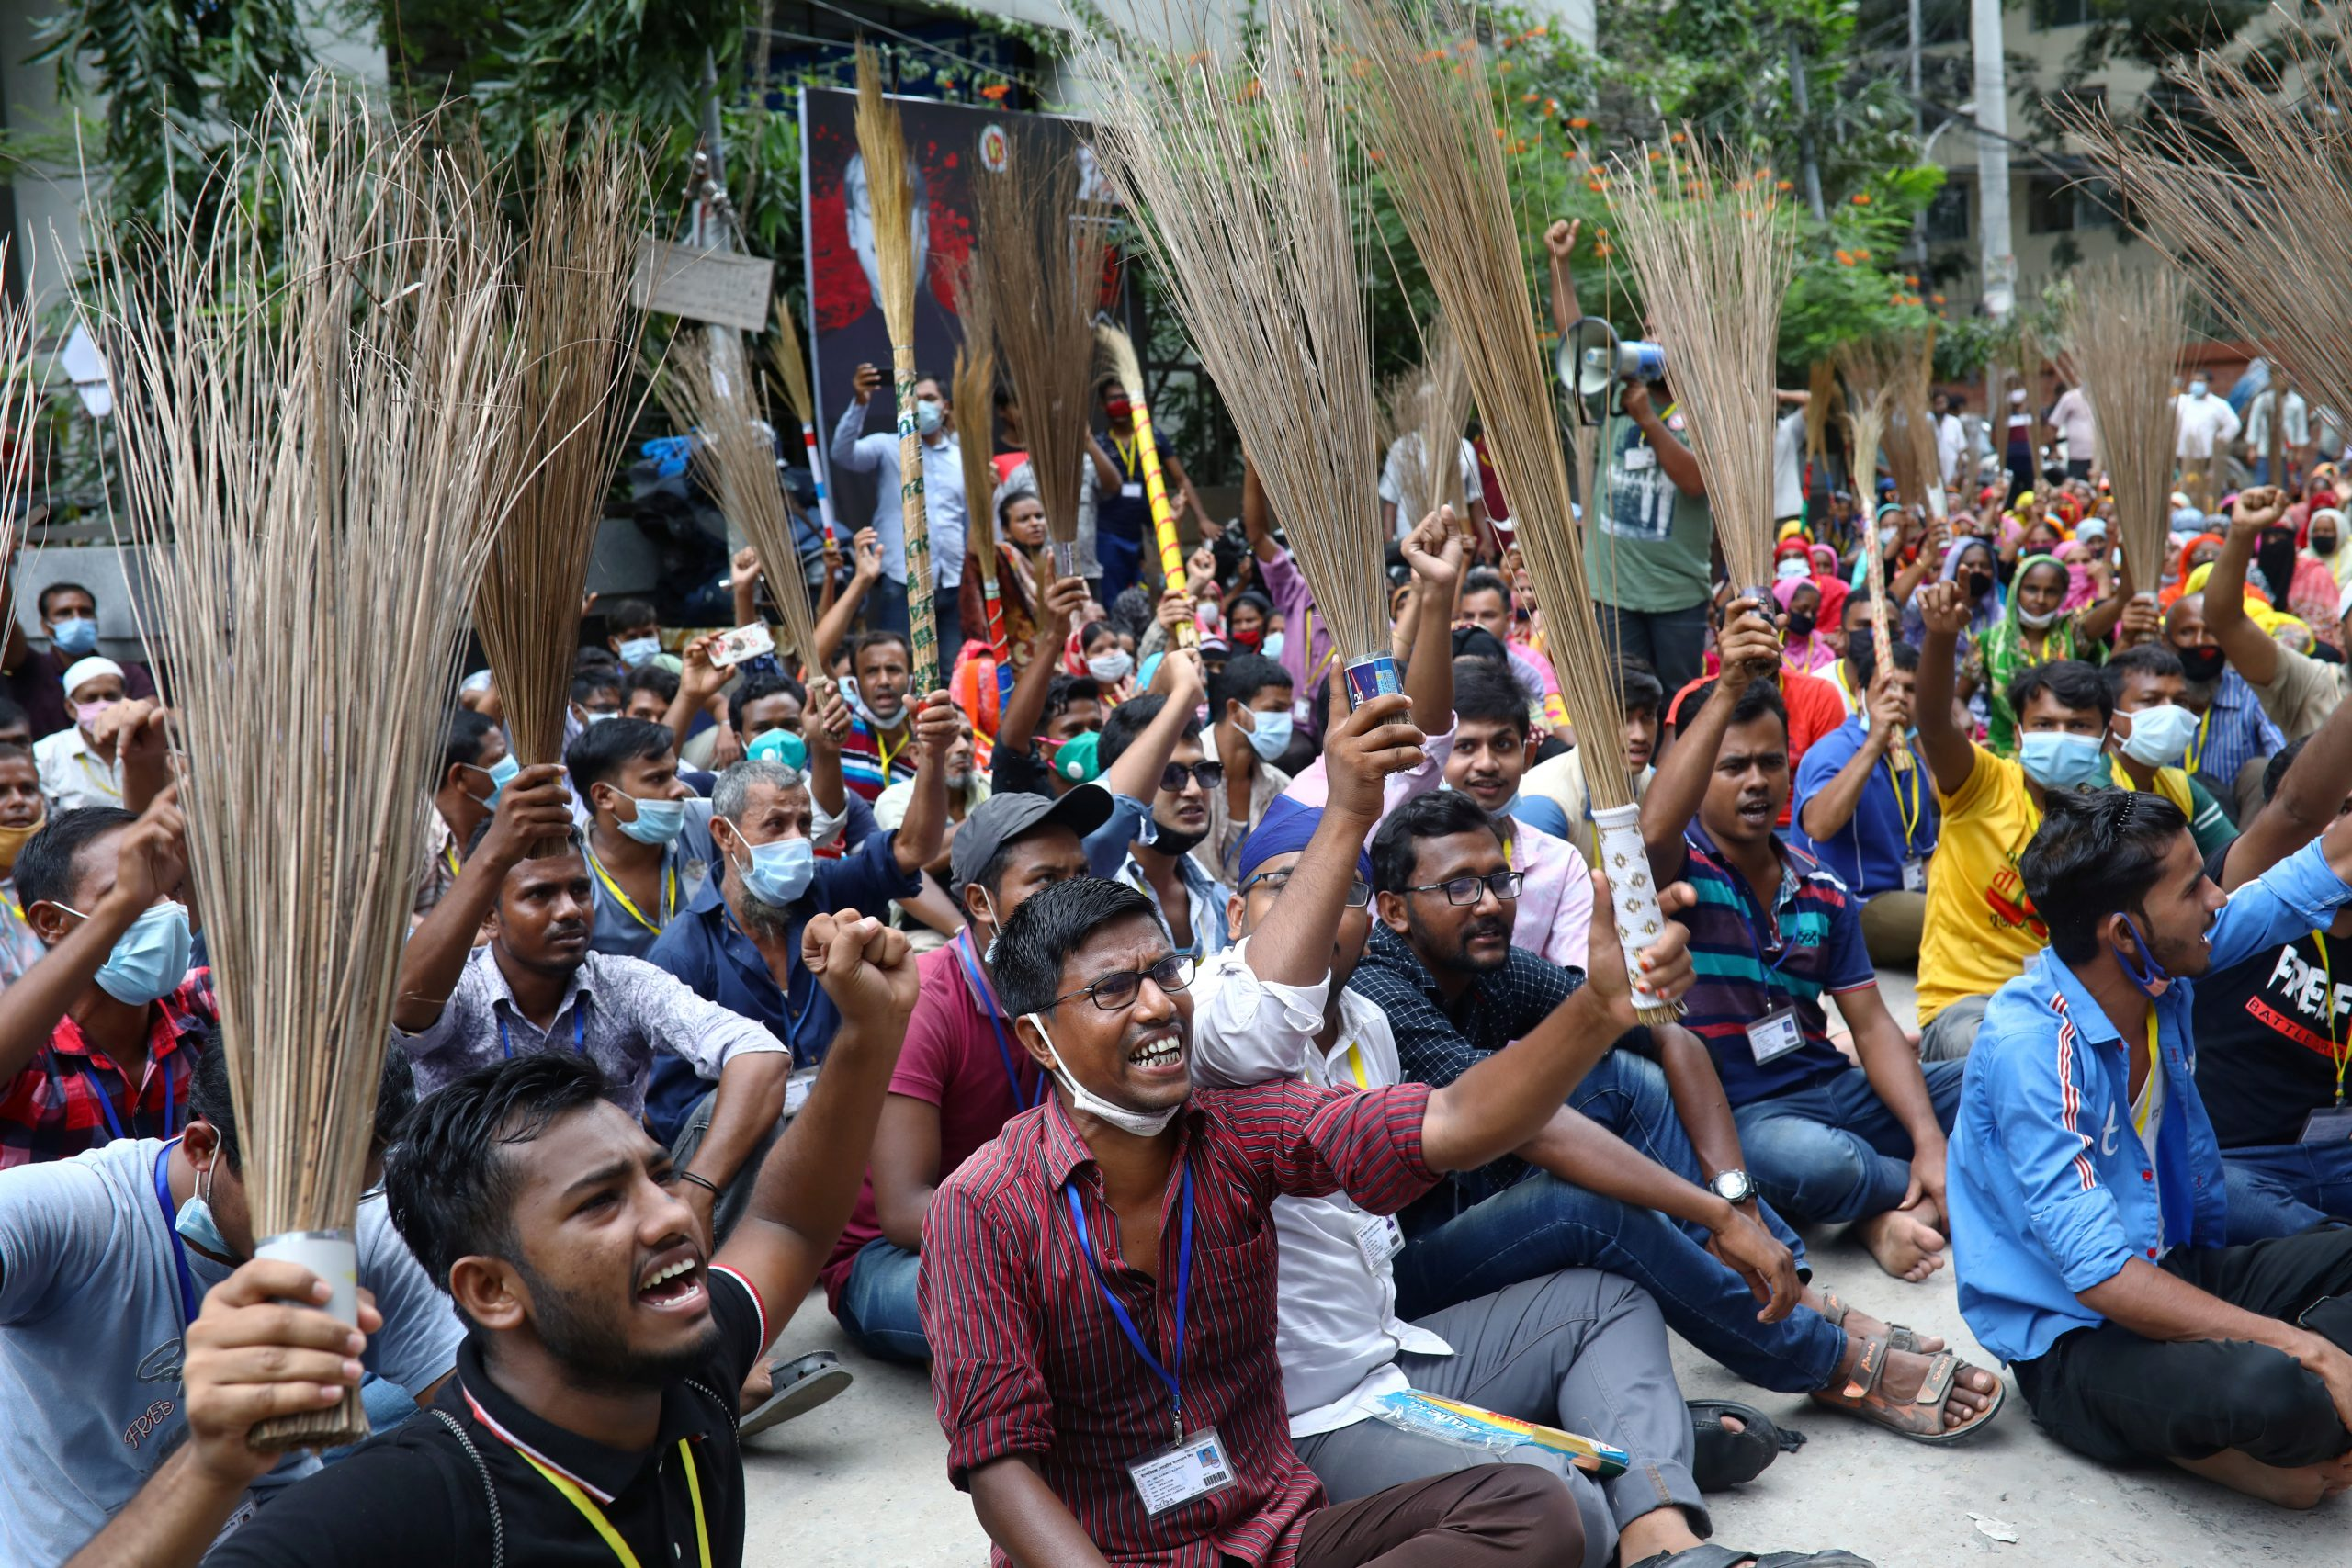 Garment workers shout slogans while holding brooms during a protest demanding their due wages in Dhaka, Bangladesh, September 7, 2020. REUTERS/Mohammad Ponir Hossain